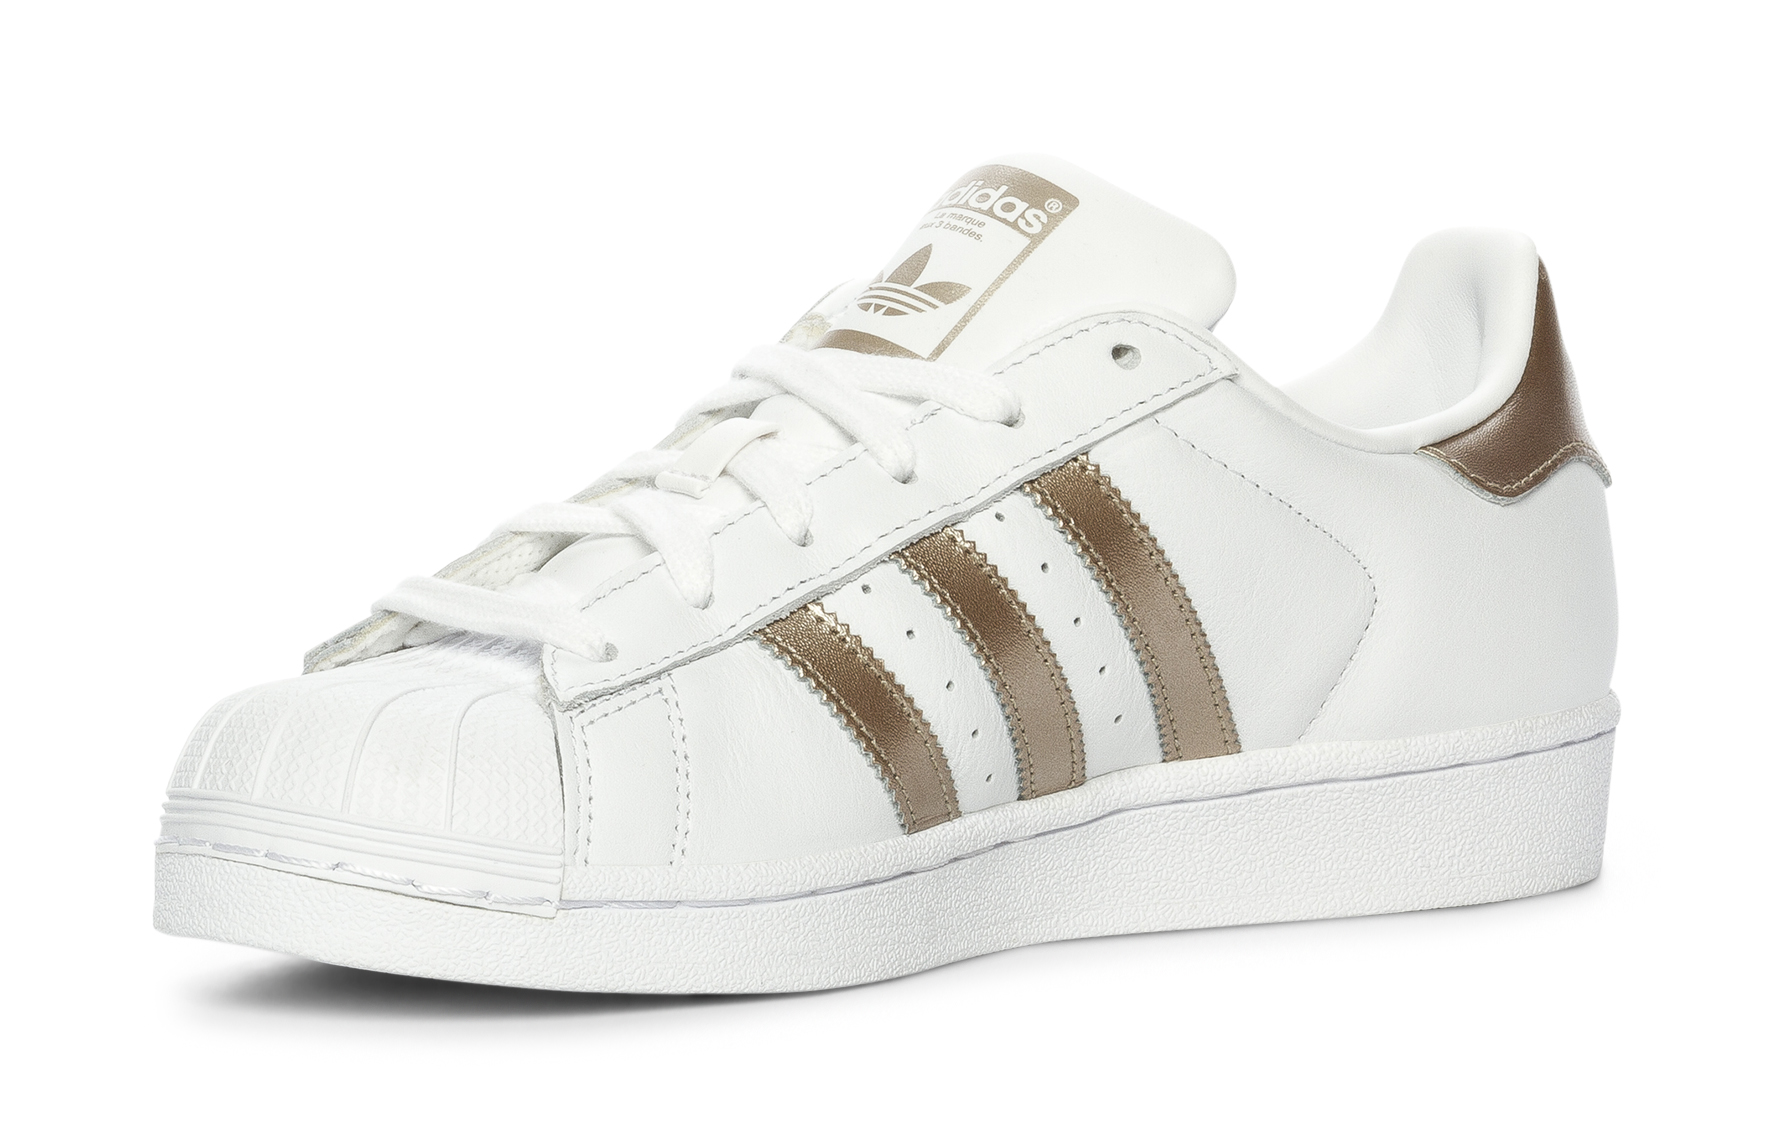 innovative design 52617 cc018 ADIDAS Superstar - Valkoinen 314088 feetfirst.fi